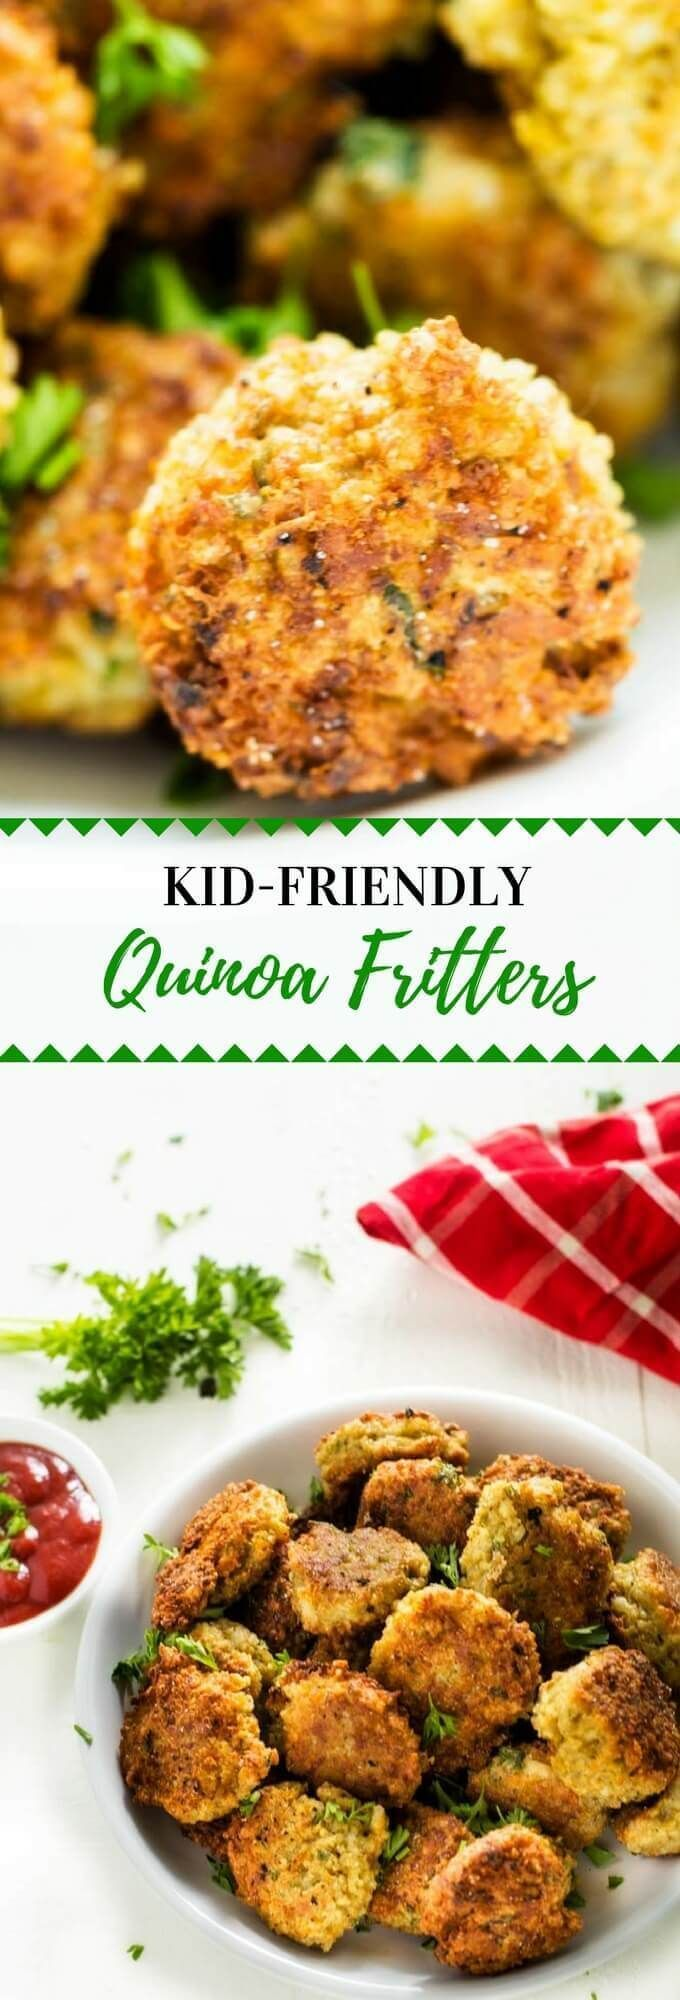 Quinoa Fritters -  These Kid Friendly Quinoa Fritters are one of my favorite quinoa recipes for kid